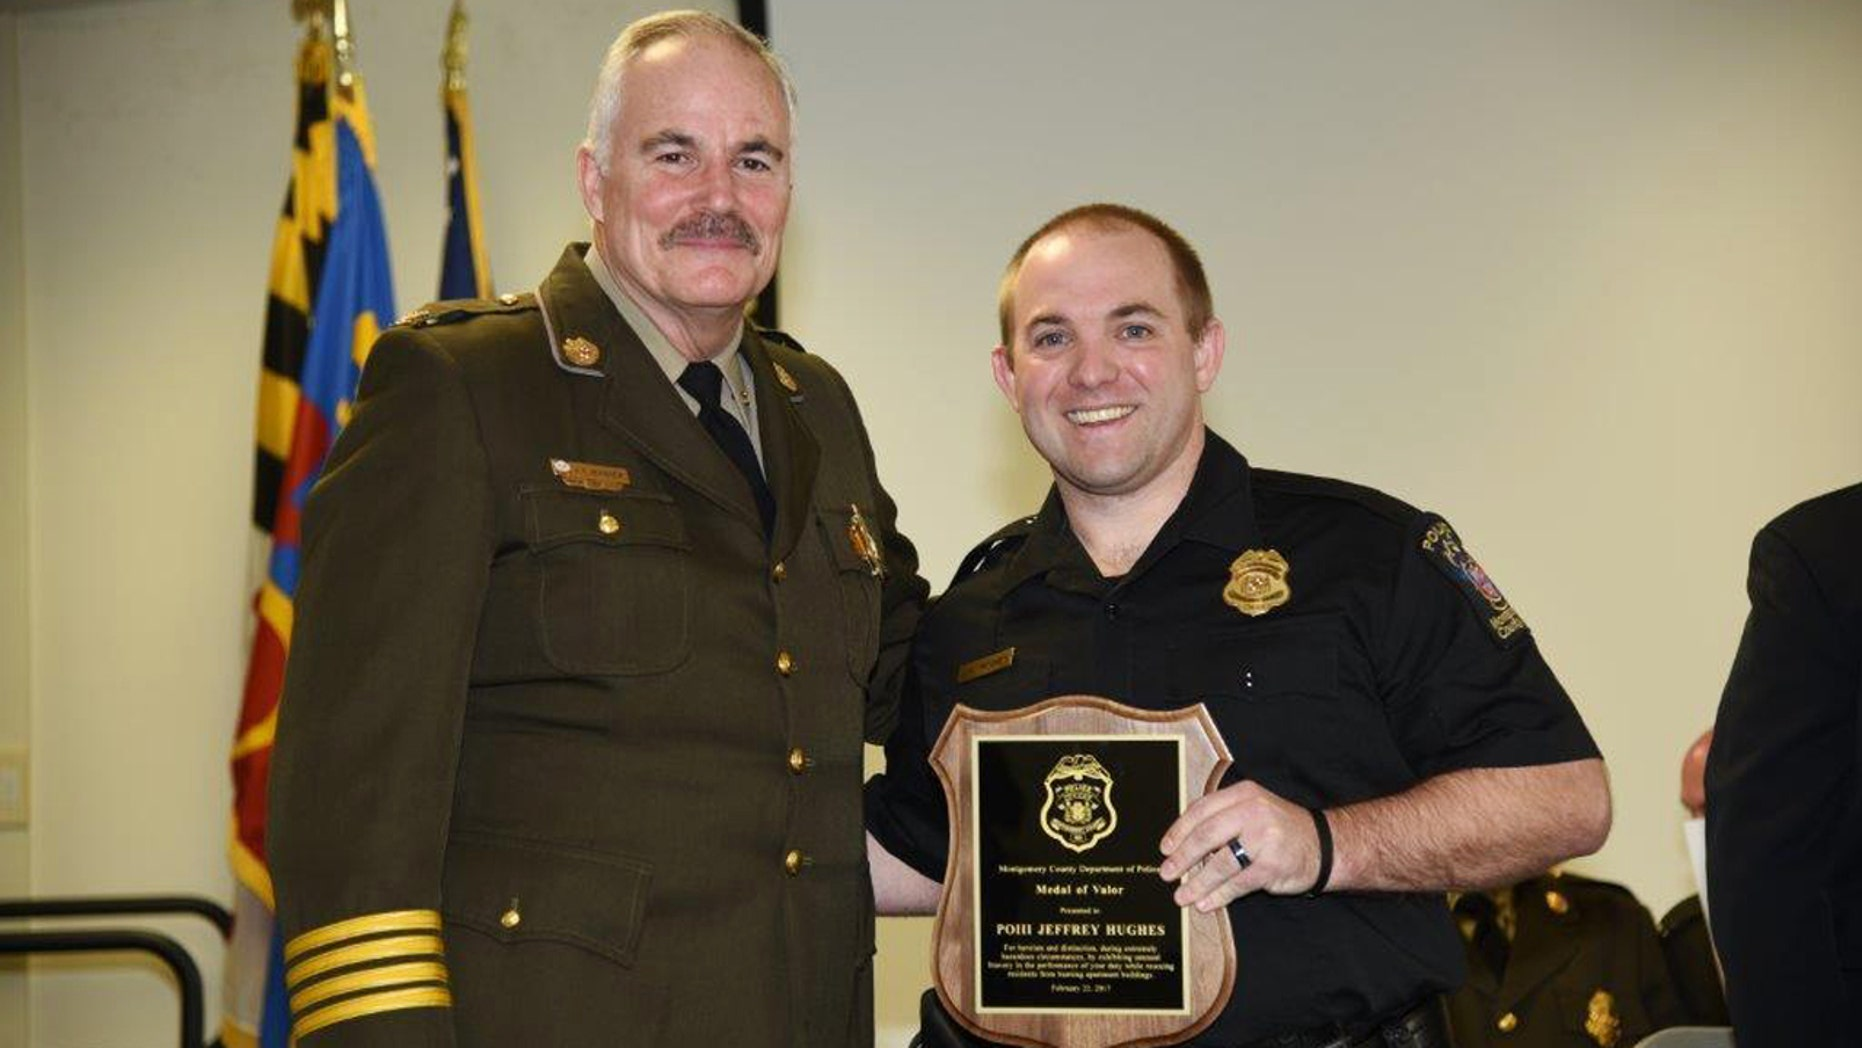 In this Feb. 22, 2017 photo provided by Montgomery County Police, Officer Jeff Hughes, right, poses for a photo with the Medal of Valor award with Chief Tom Manger in Gaithersburg, Md.